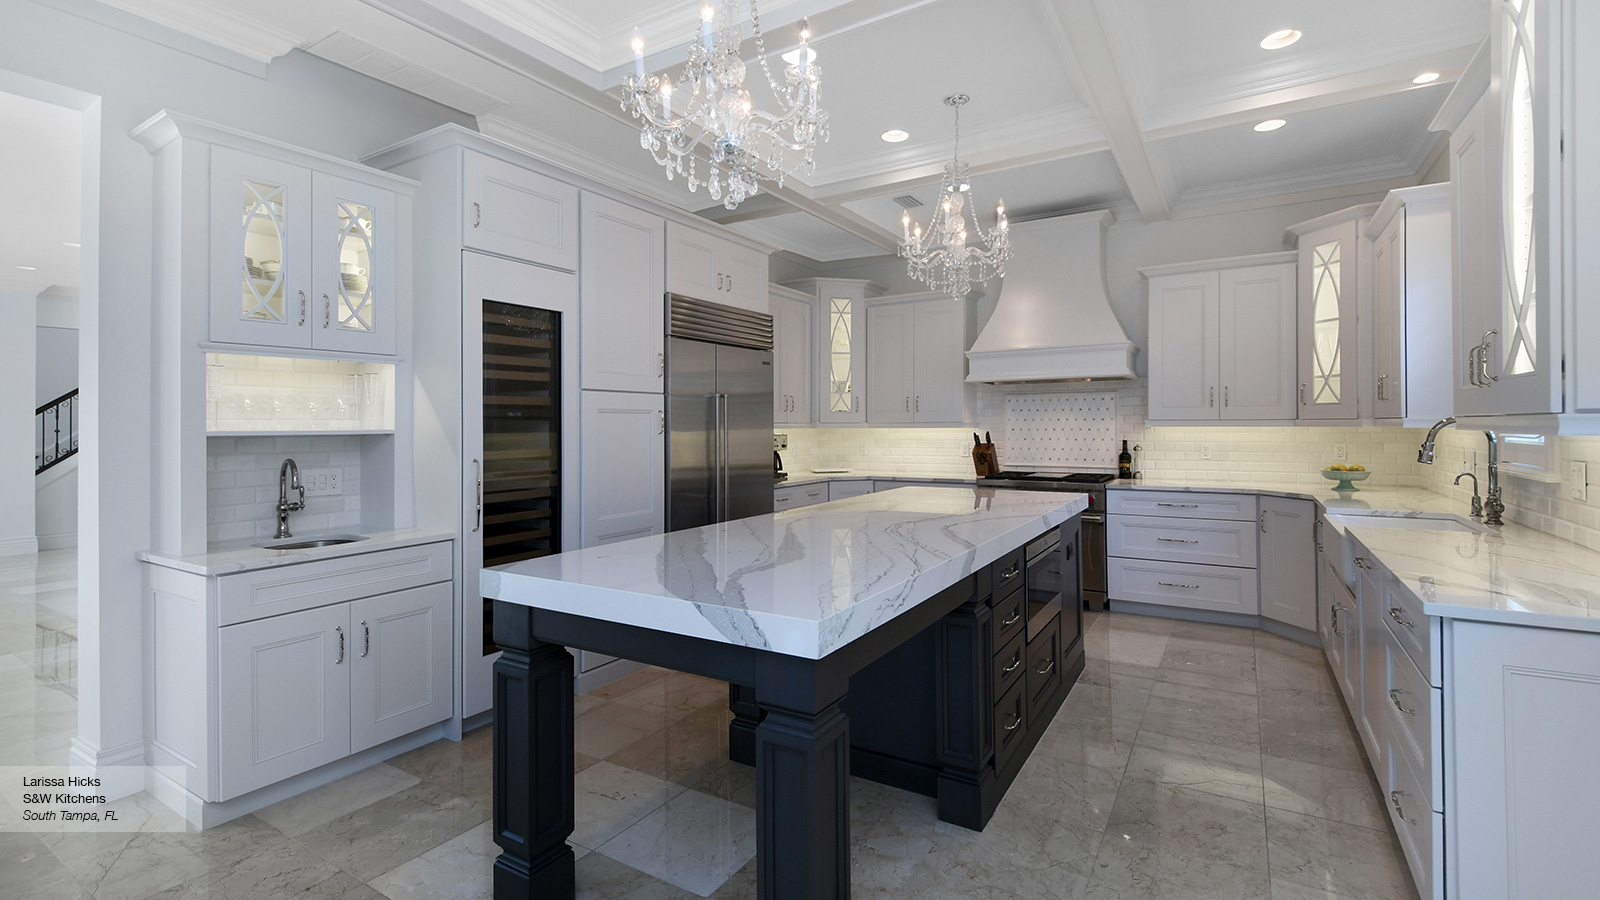 Modular White Kitchen Cabinets With A Dark Grey Island - Omega in Fresh Grey And White Kitchen Cabinets